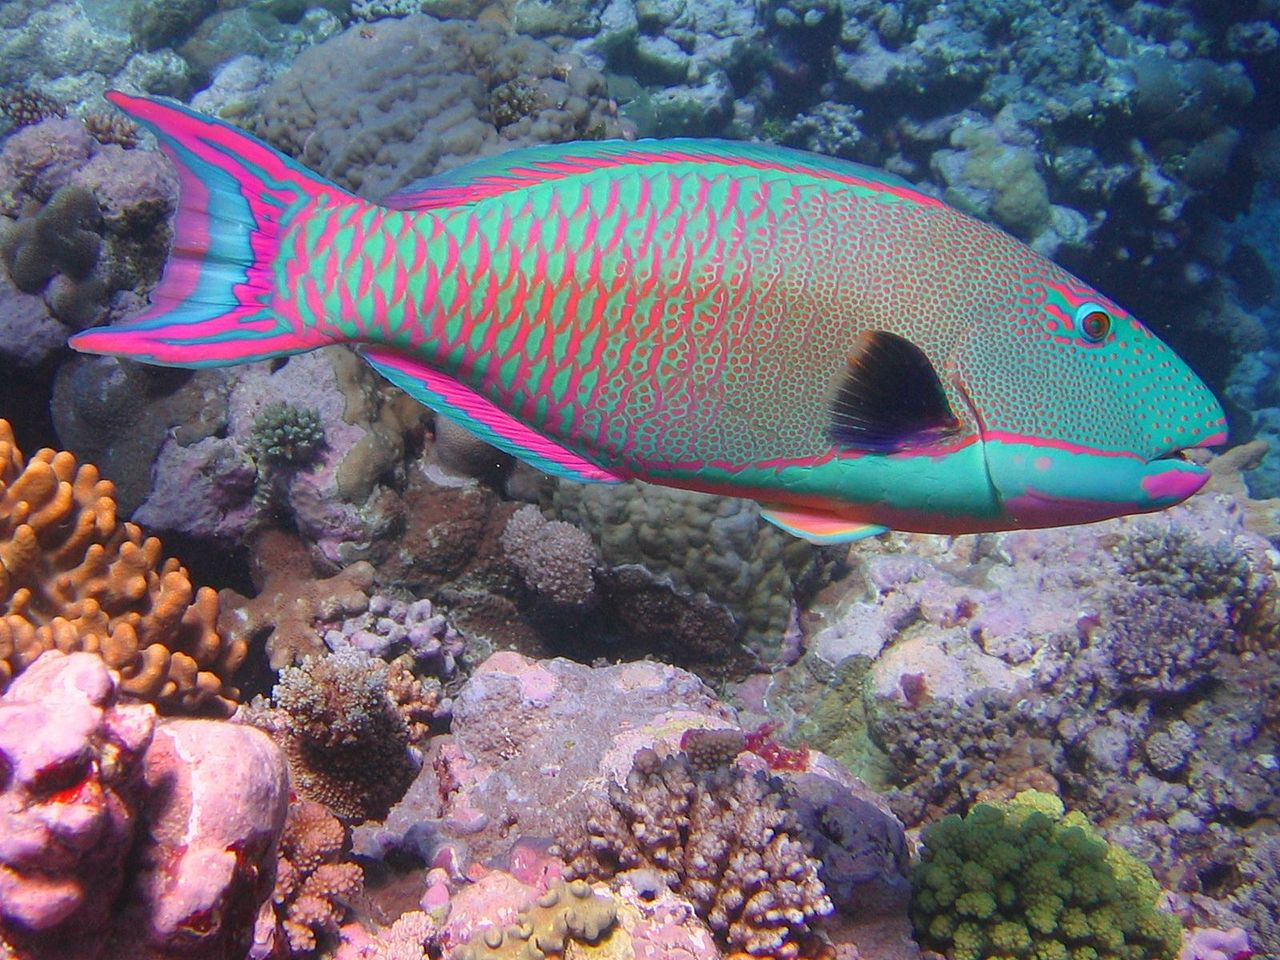 Figure 3 Bicolor Parrotfish, by Richard Ling via Wikimedia Commons